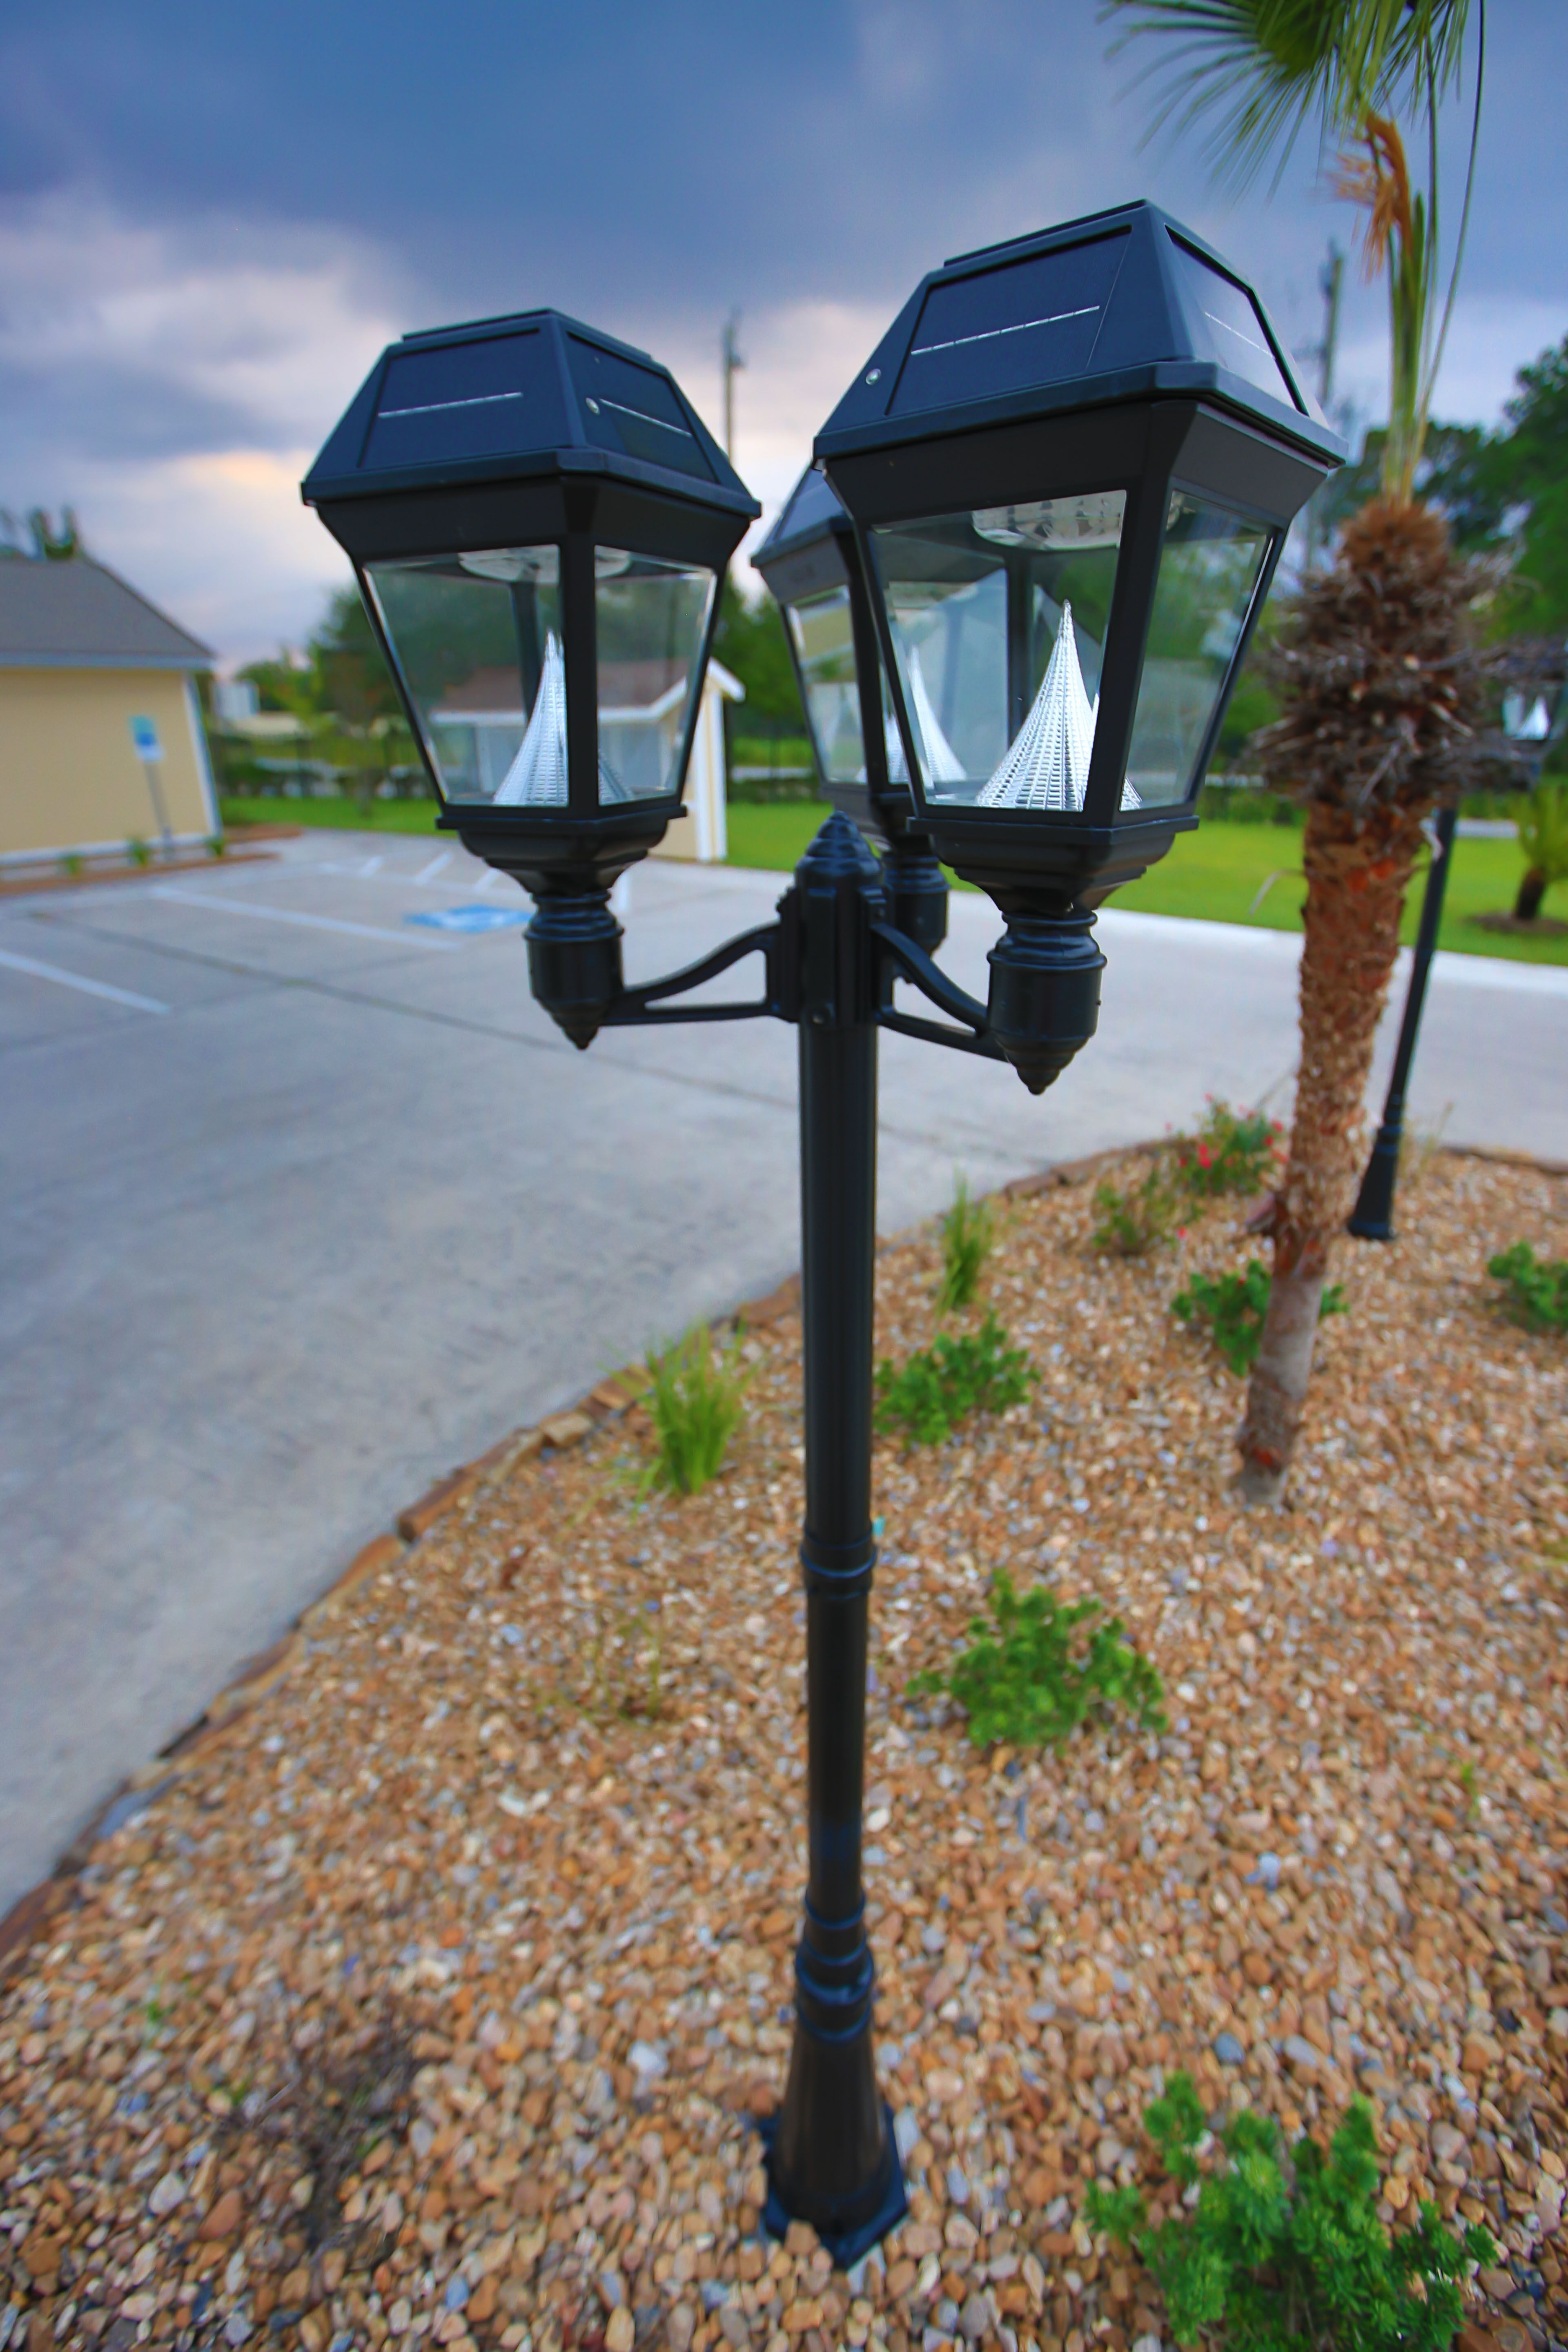 hight resolution of this led solar powered lamp post light fixture is the perfect eco friendly solution for any residential or commercial property shop the full imperial ii